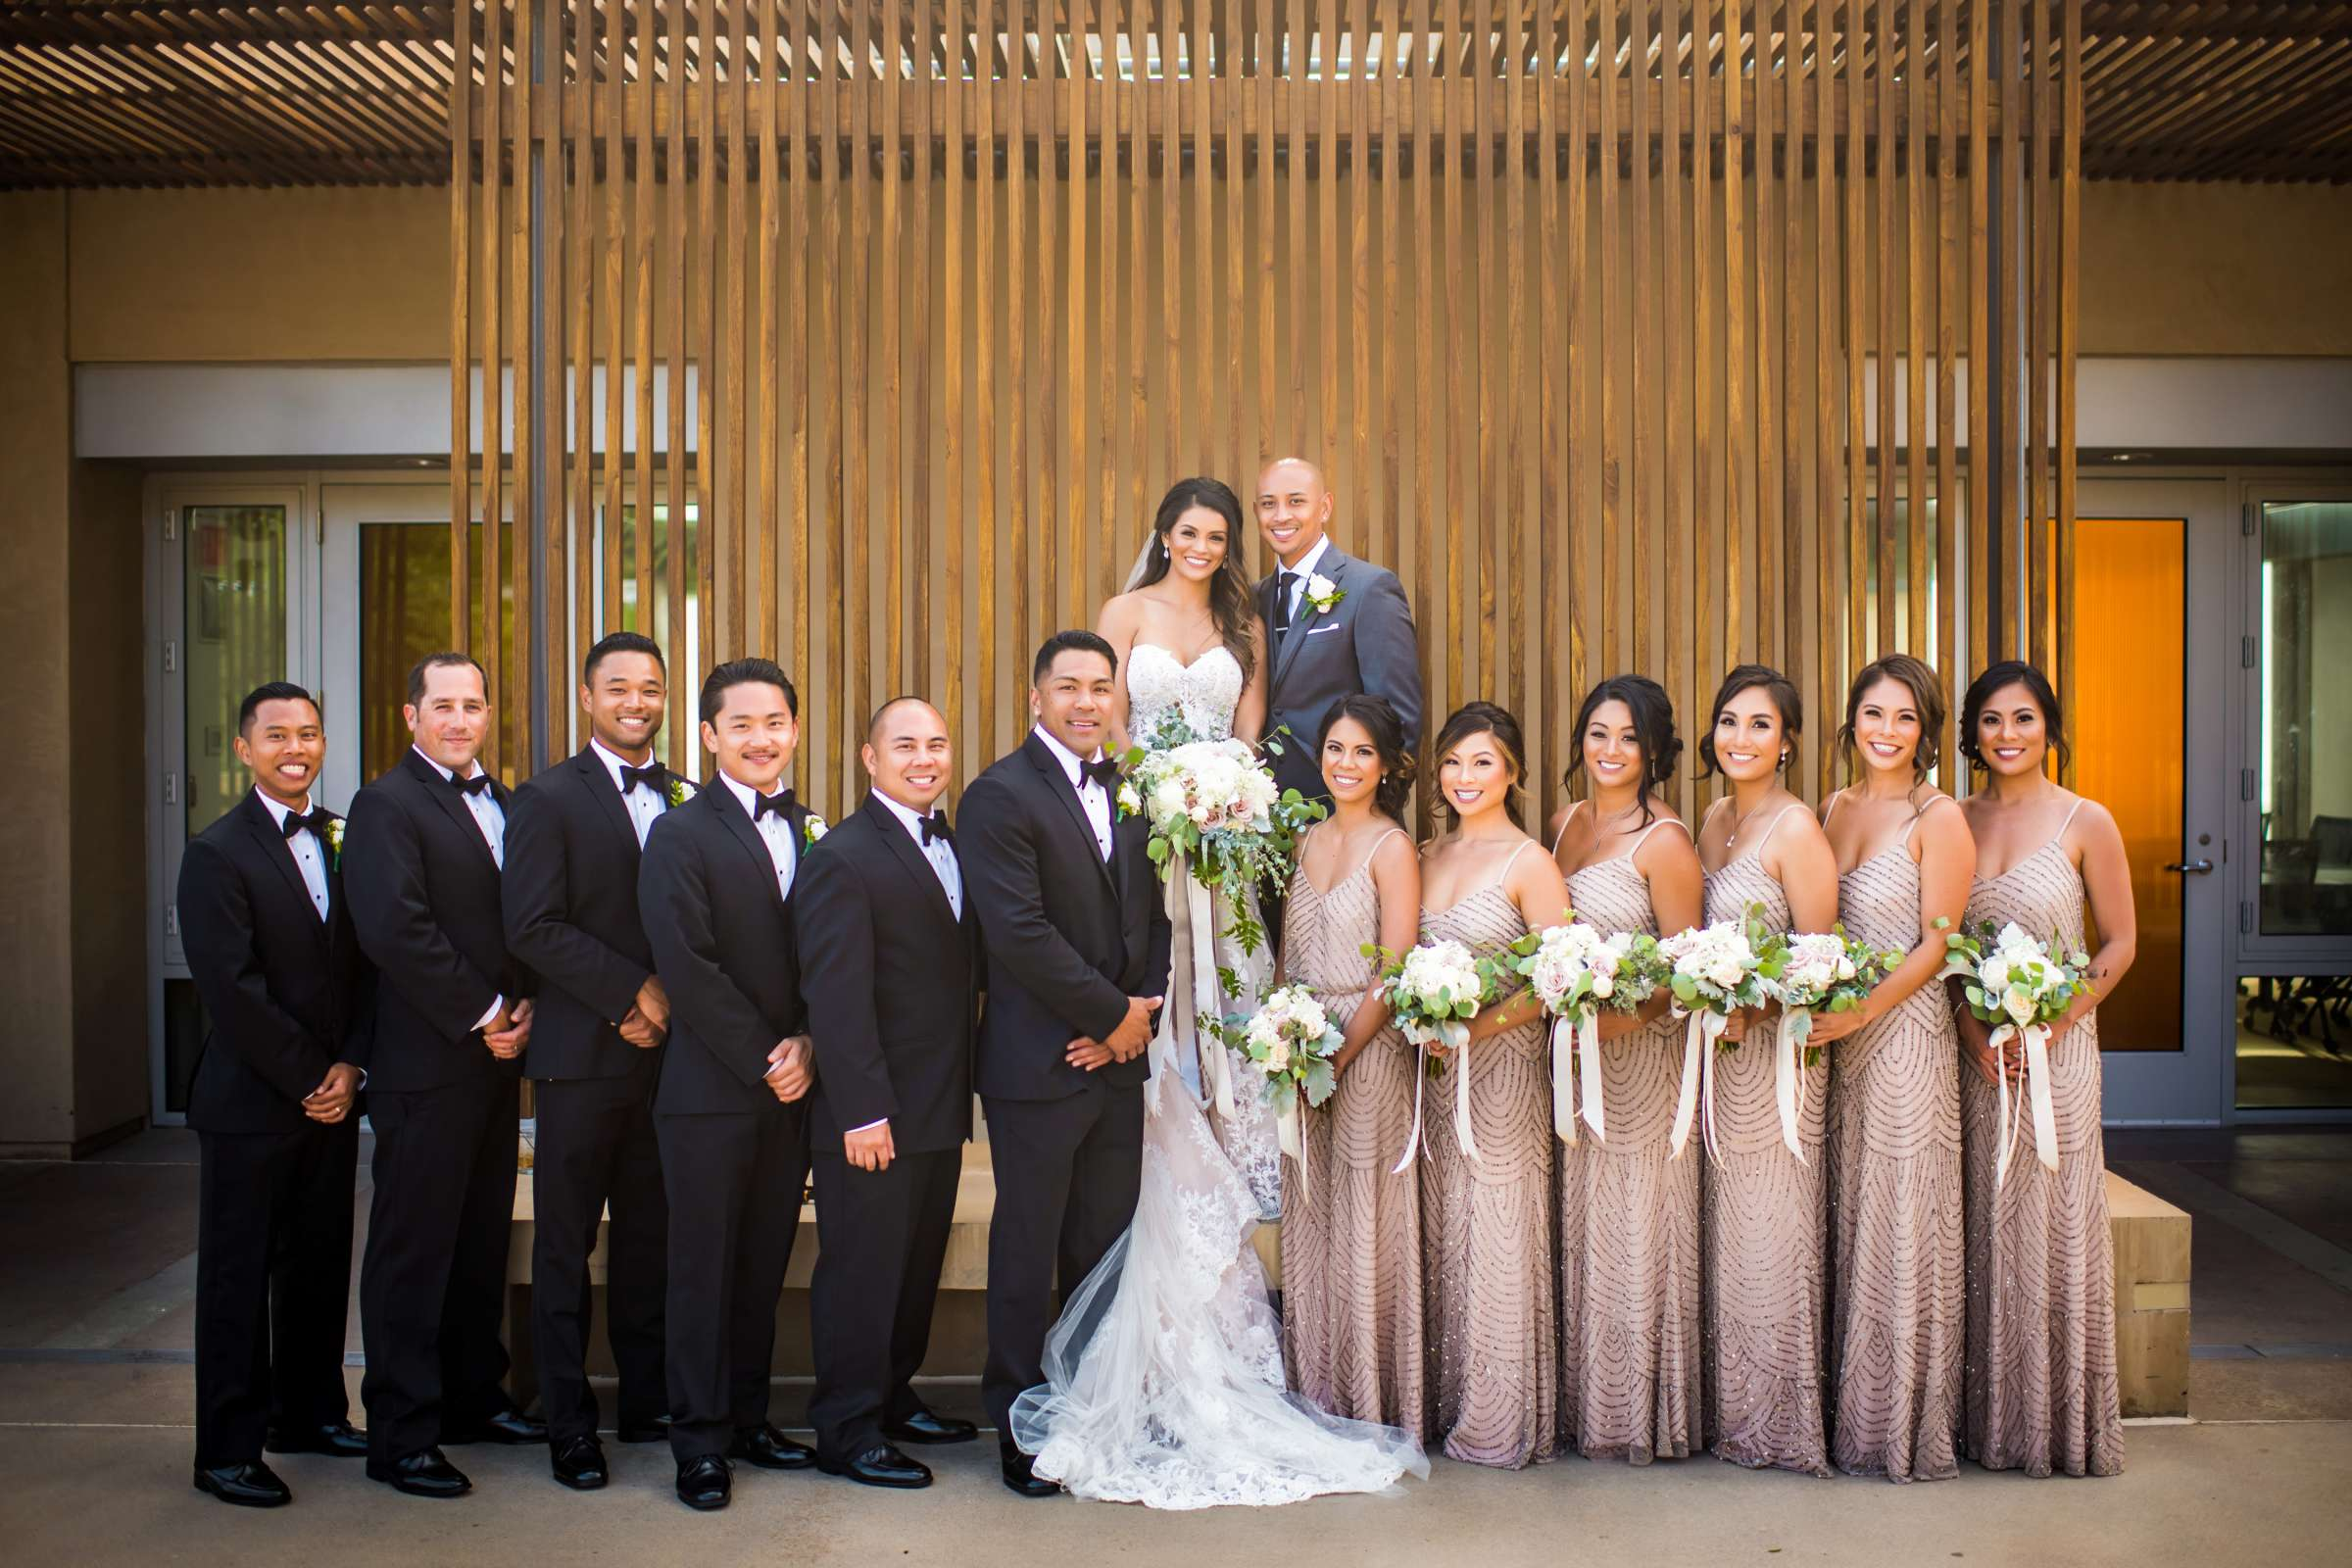 Scripps Seaside Forum Wedding coordinated by Lavish Weddings, Cindy and Justin Wedding Photo #381845 by True Photography